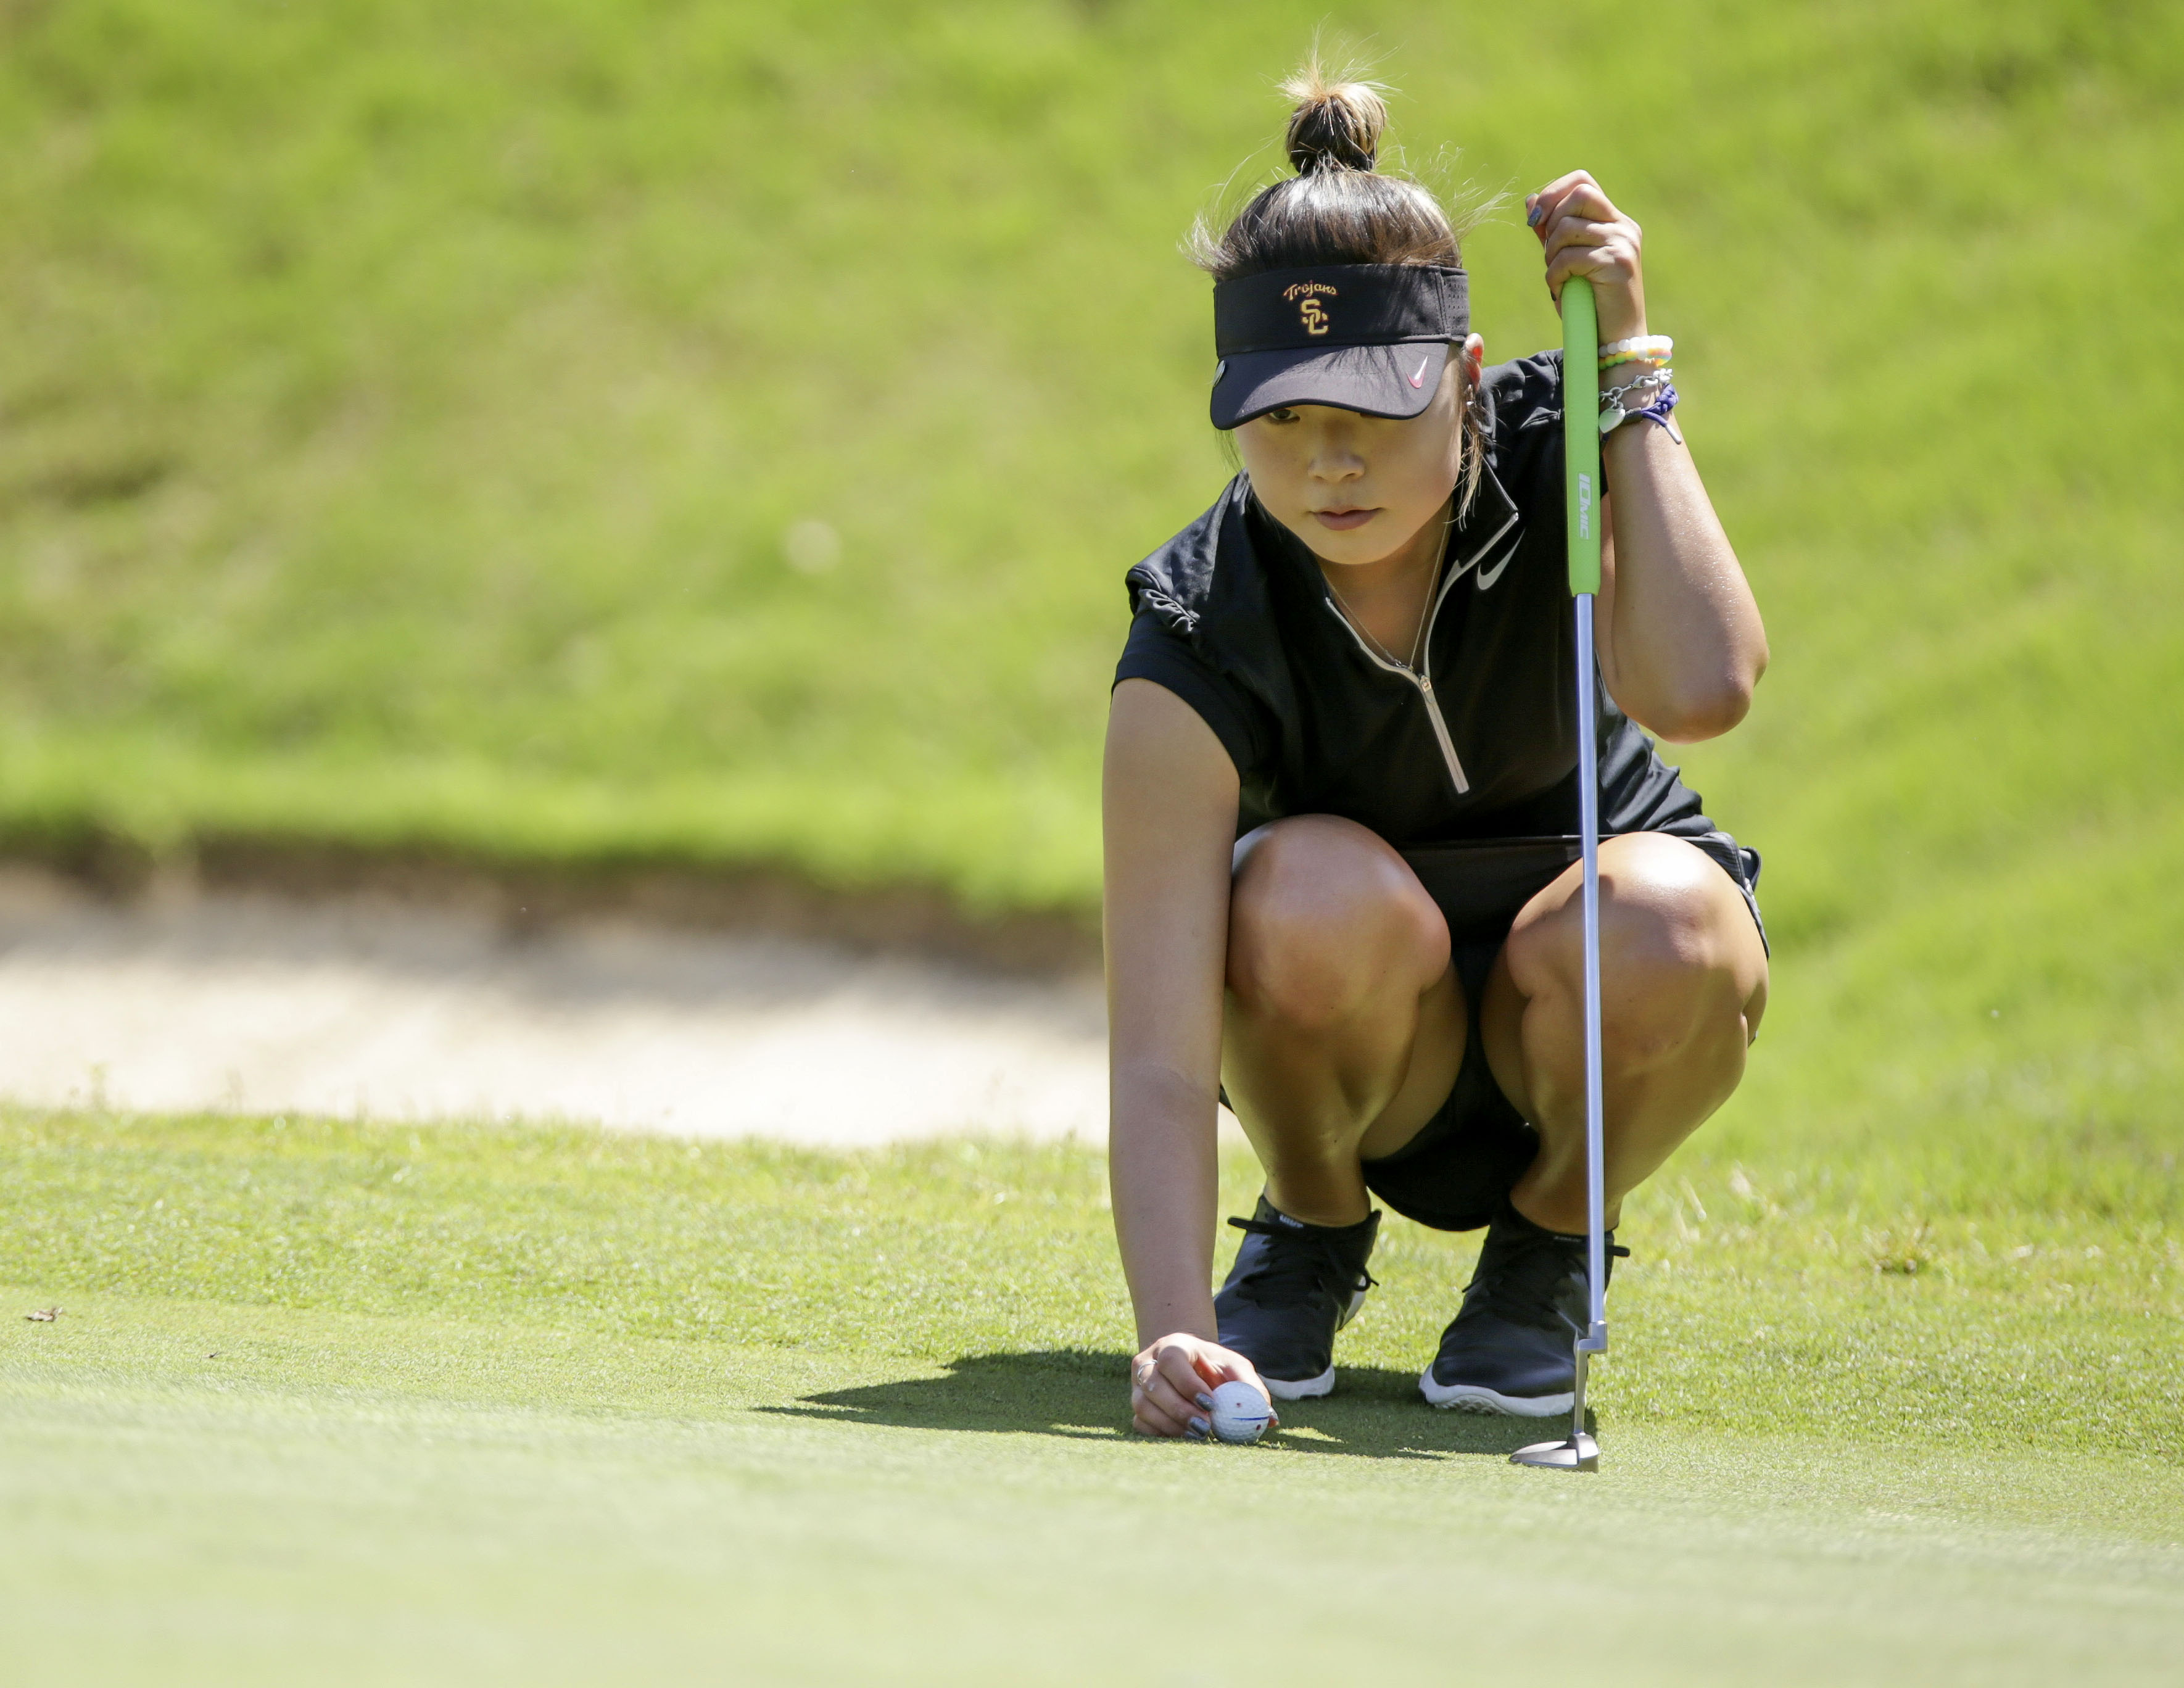 Photo courtesy of Sports Information Never say die · Sophomore Robynn Ree led the team at 5-under on Tuesday to help the Women of Troy to a 13-stroke comeback victory.